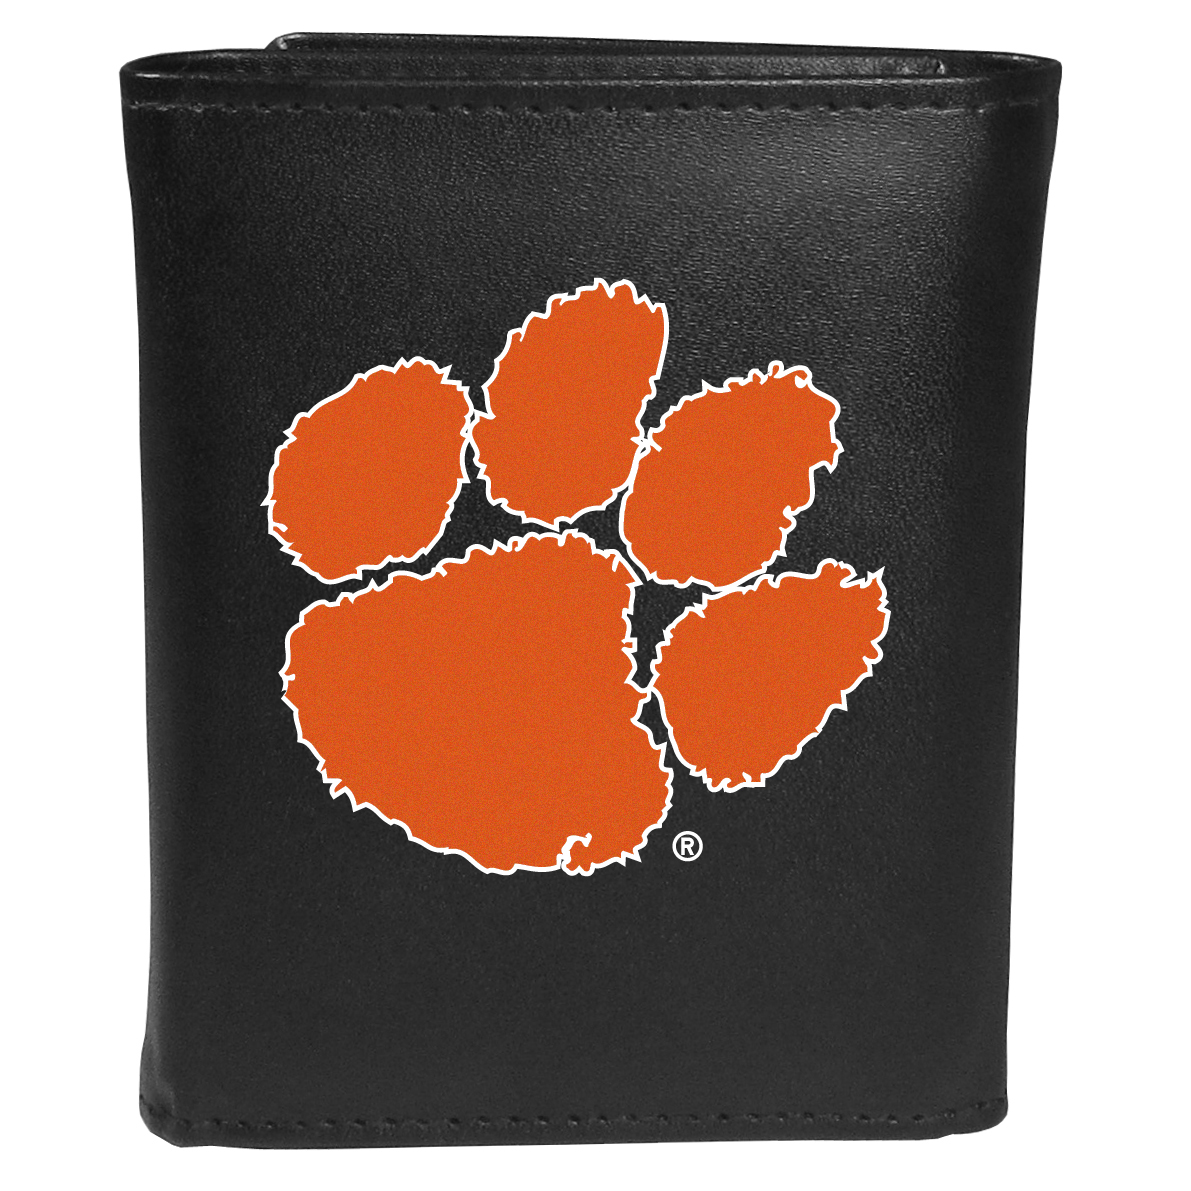 Clemson Tigers Tri-fold Wallet Large Logo - Sports fans do not have to sacrifice style with this classic tri-fold wallet that sports theClemson Tigers?extra large logo. This men's fashion accessory has a leather grain look and expert craftmanship for a quality wallet at a great price. The wallet features inner credit card slots, windowed ID slot and a large billfold pocket. The front of the wallet features an extra large printed team logo.